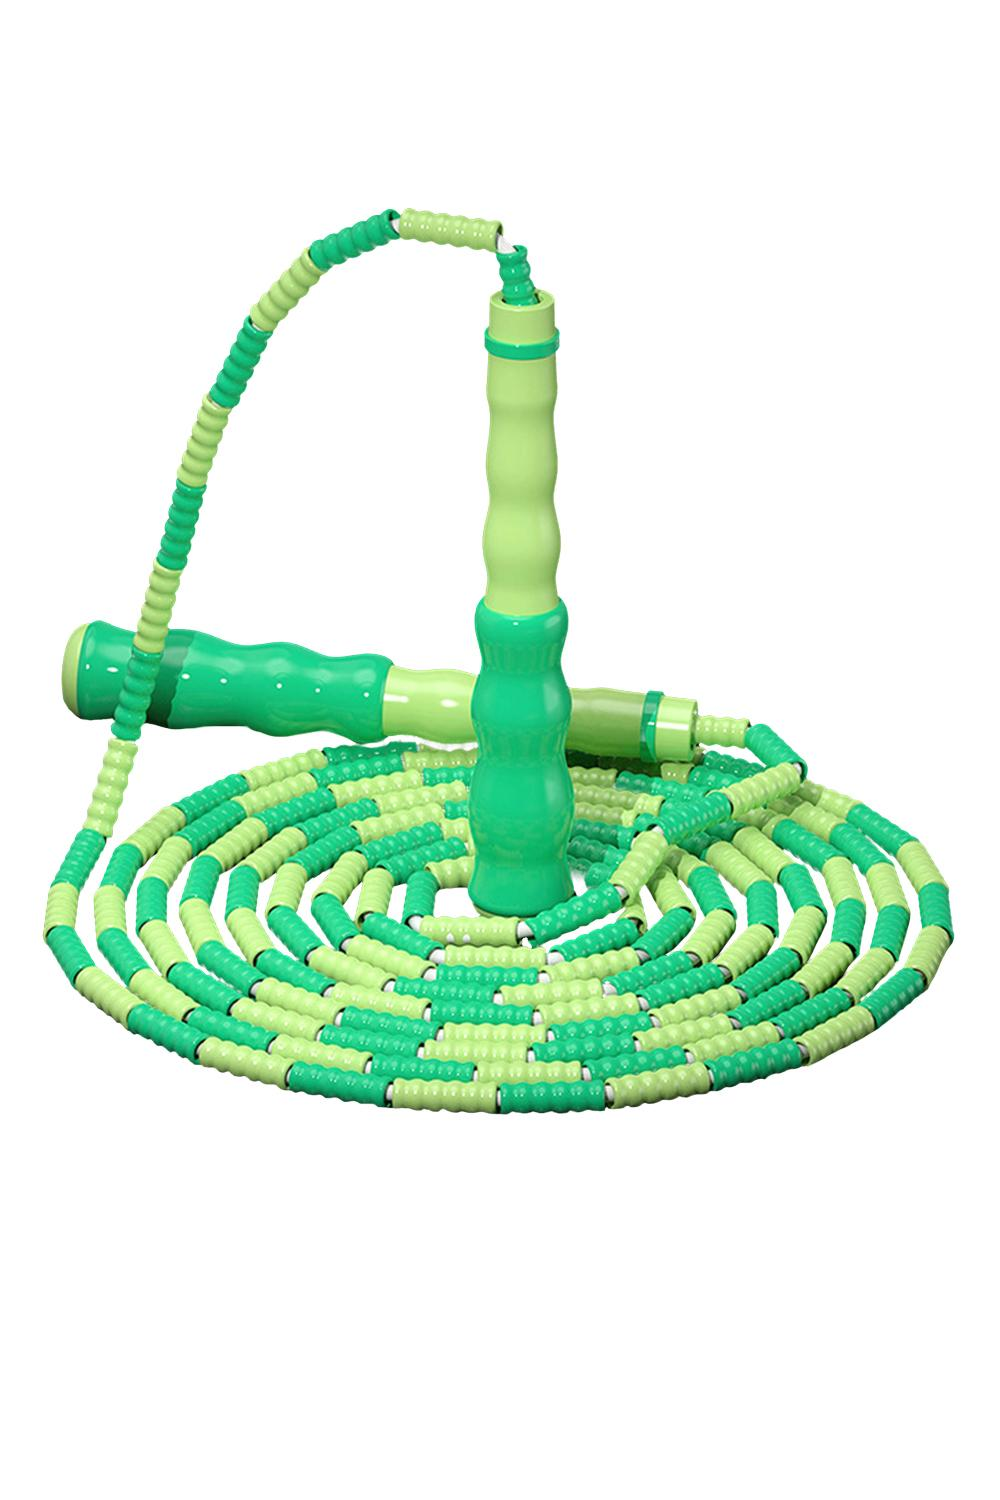 DHL SHIP -Bamboo Festival Pattern Jump Rope For Loss Weight and Fitness Exercise For Children and Adult Bead Rope Skipping Rope FY7058